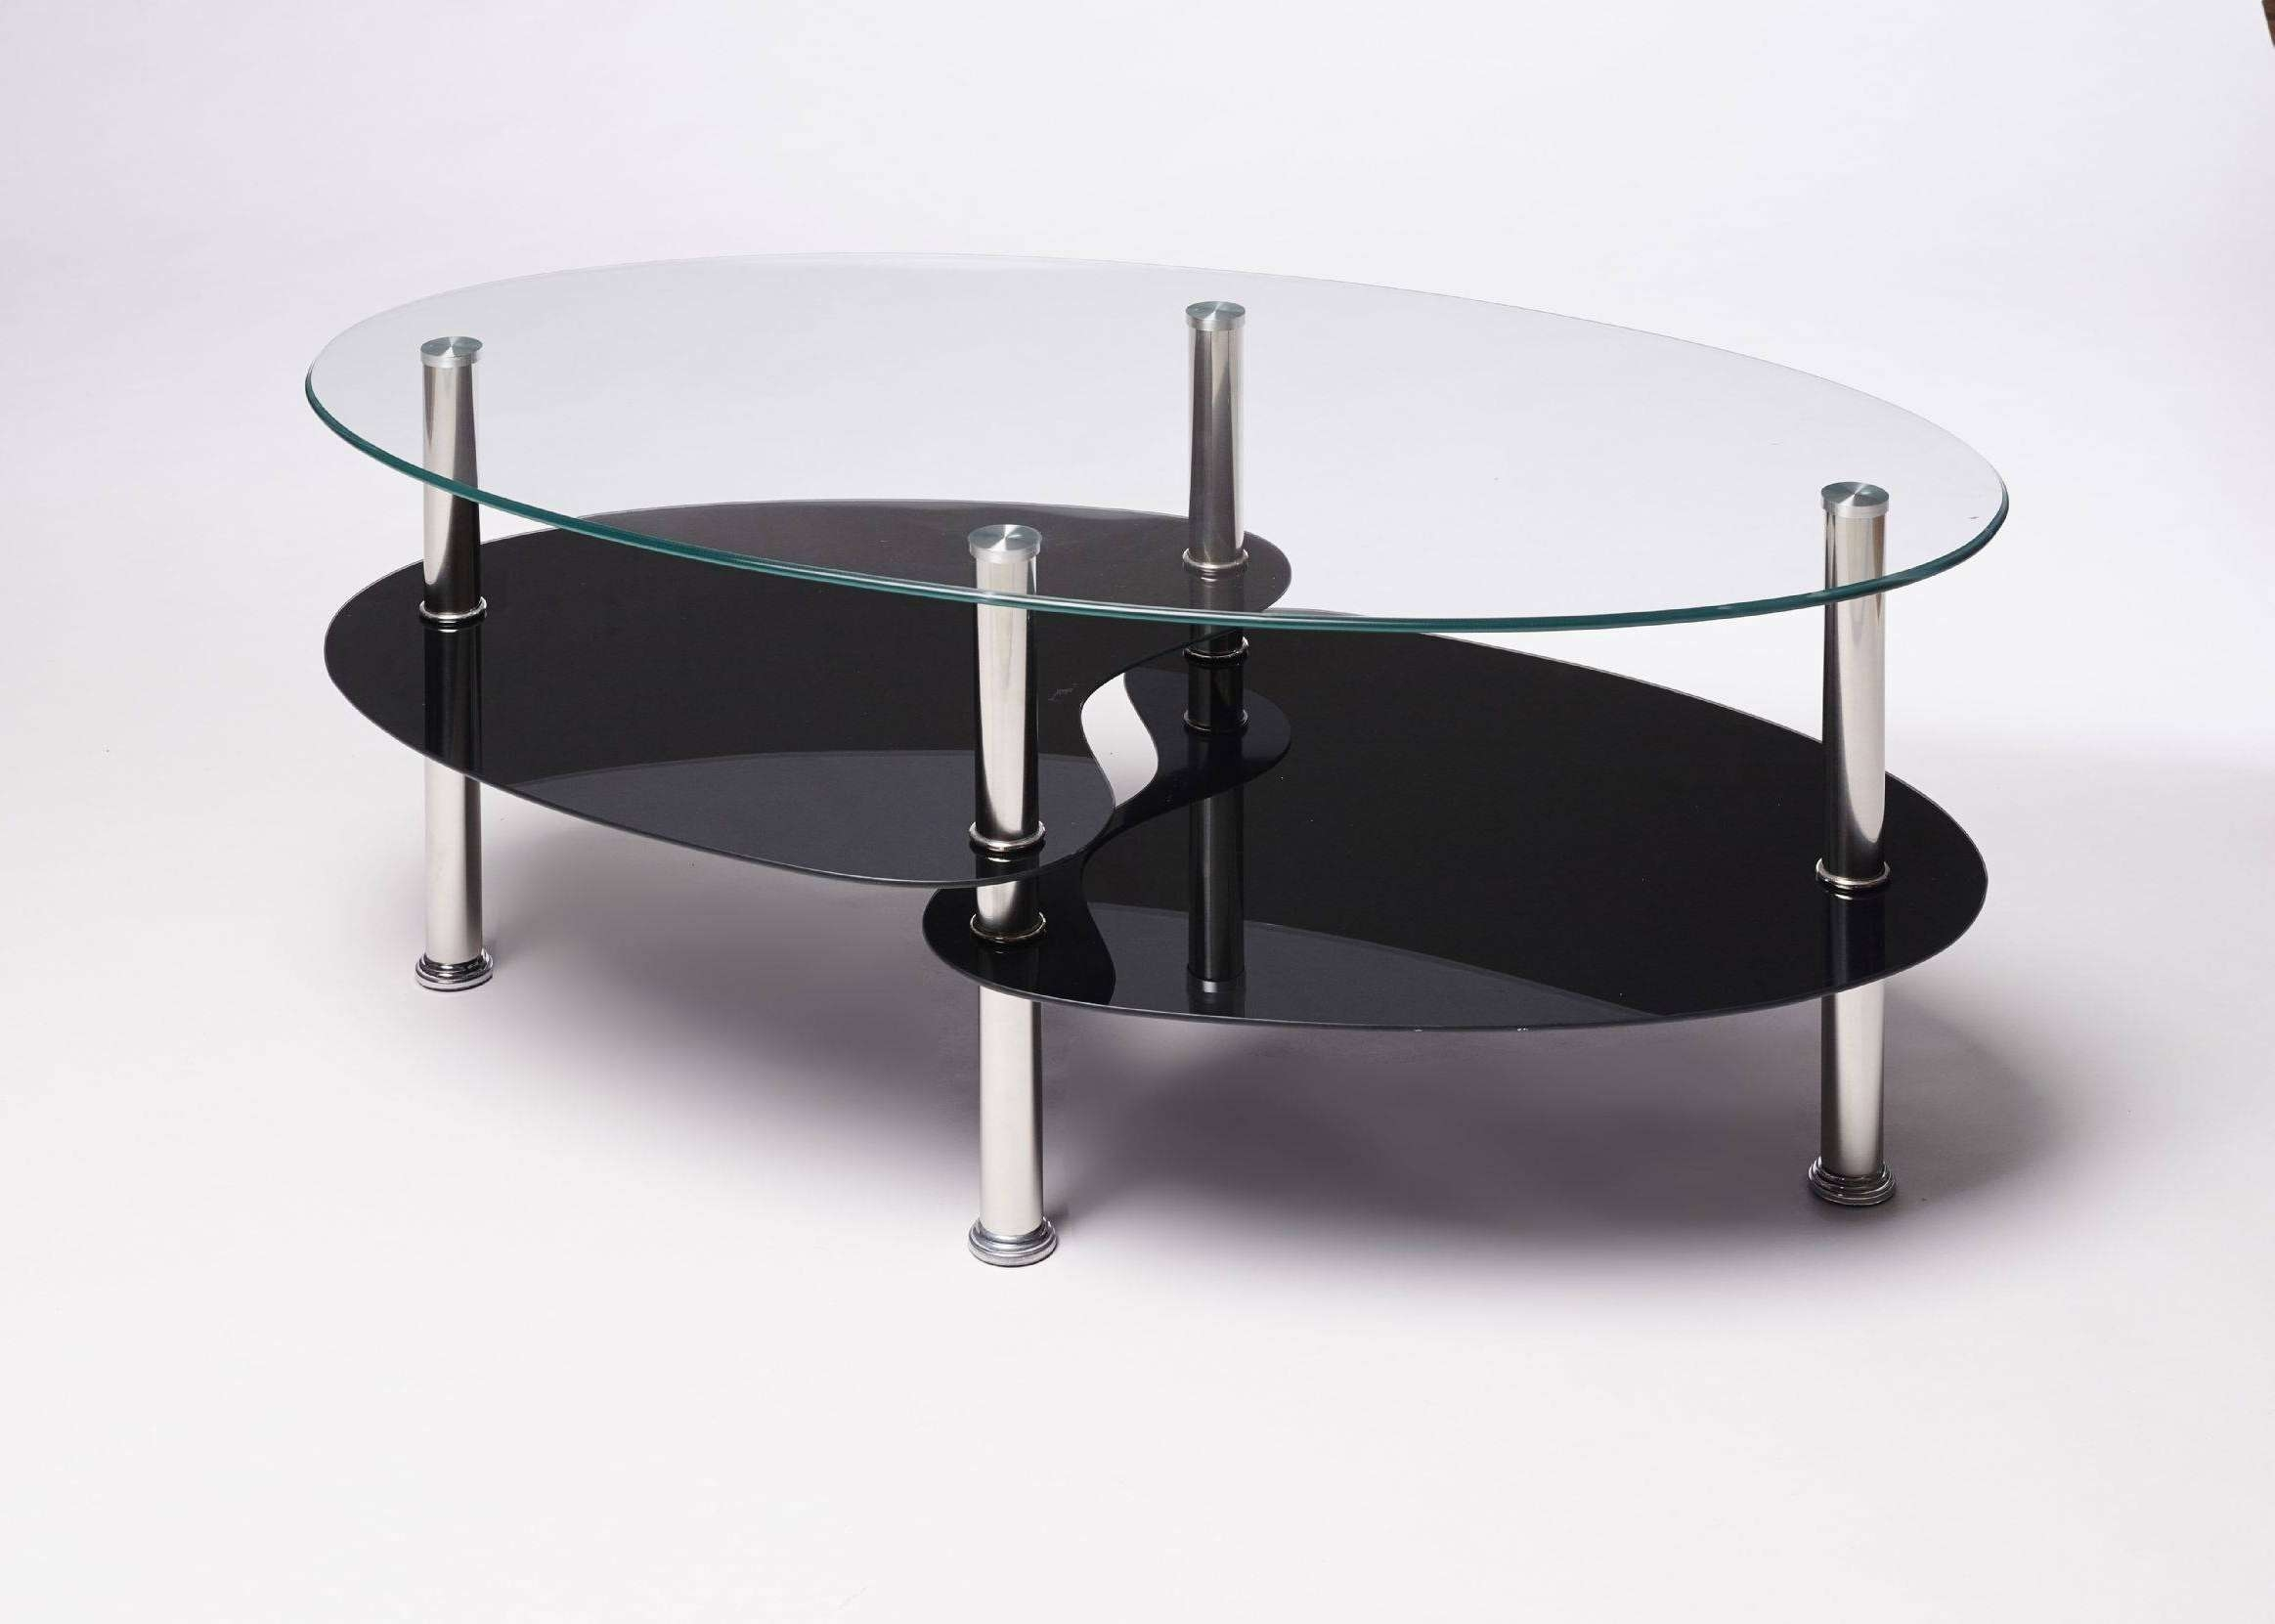 Black Oval Coffee Table Set • Table Setting Design Regarding Preferred Black Oval Coffee Table (View 3 of 20)